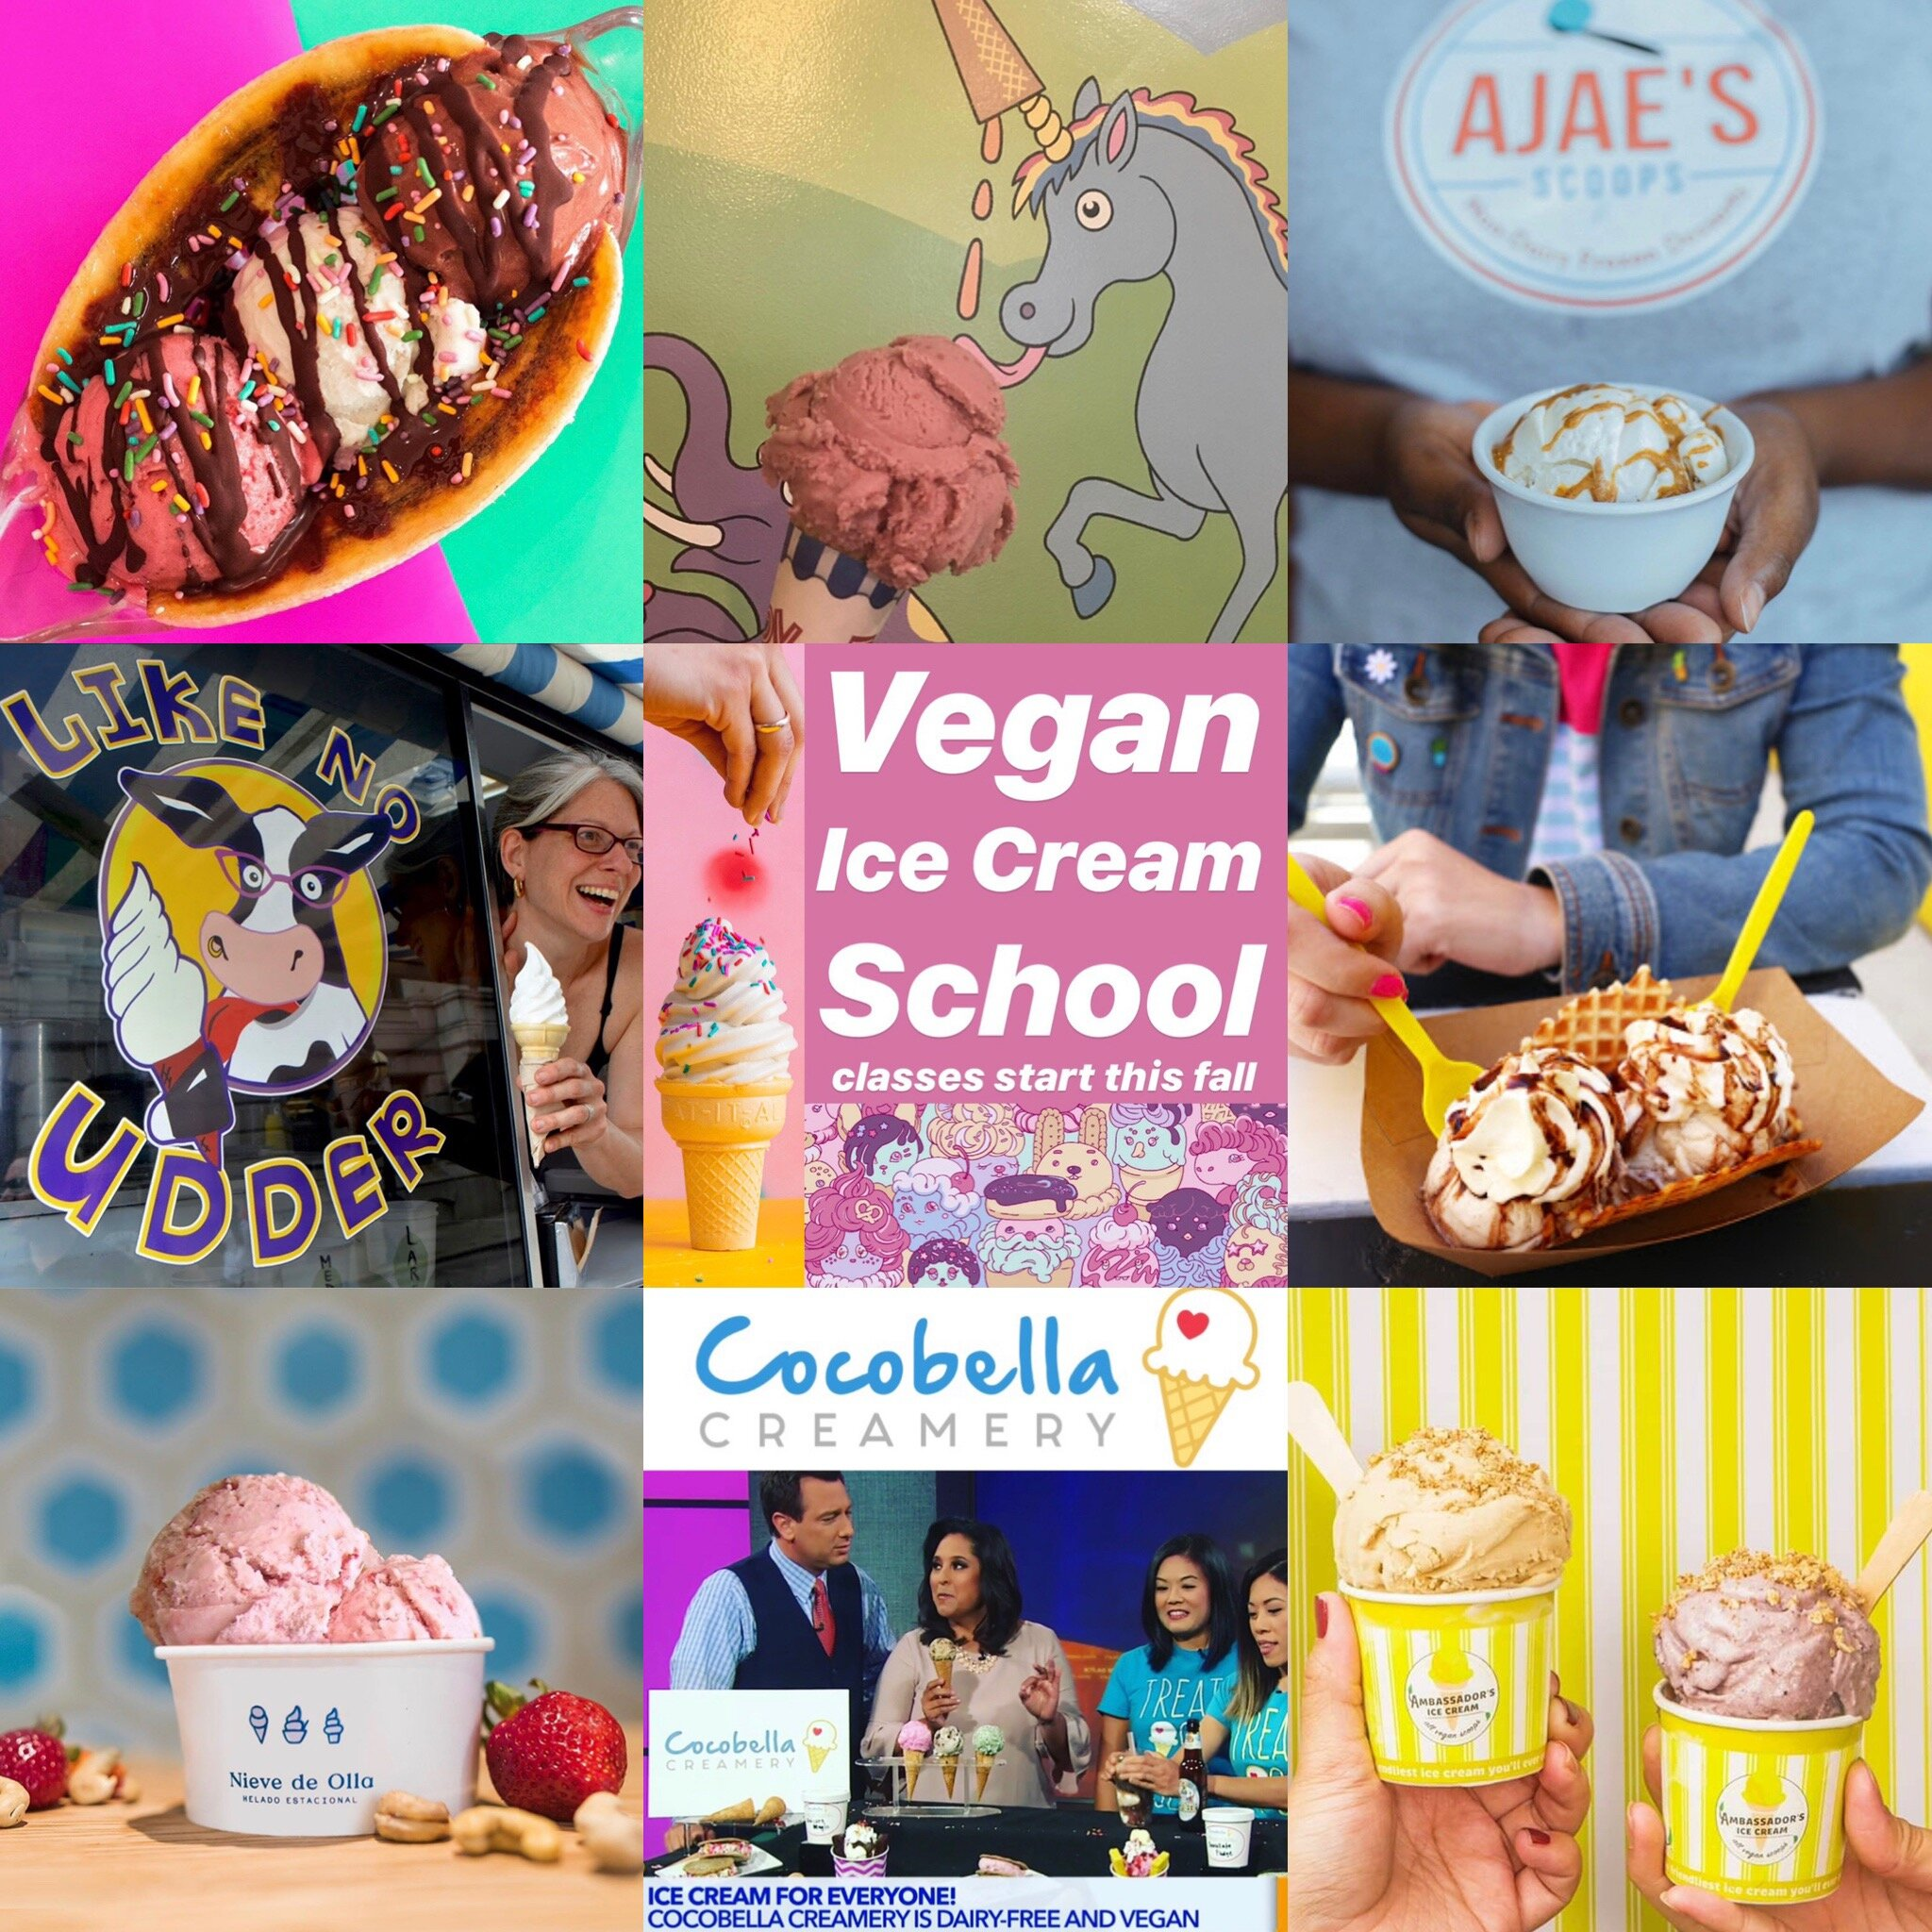 Student Success stories - Past participants in Cool School have gone on to open their own vegan ice cream shops including:Monkey Wrench in Salt Lake City, UTLike No Udder in Providence, RIBrightside Creamery in Denver, COCocoBella Creamery in Los Angeles, CARosanna's Dairy Free in Atlanta, GASunset Swirl in Santa Fe, NMNieve de Olla in Mexico City, MexicoAjae's Scoops in Ft. Worth, TXAwesome Bites, Co. in Houston, TXCornflower Creamery (part of Buffalo Pizza and Ice Cream Co.) in Sacramento, CAA Crafted Goodness, in Orlando, FLAbassador Ice Cream, Mandaluyong, Philippines